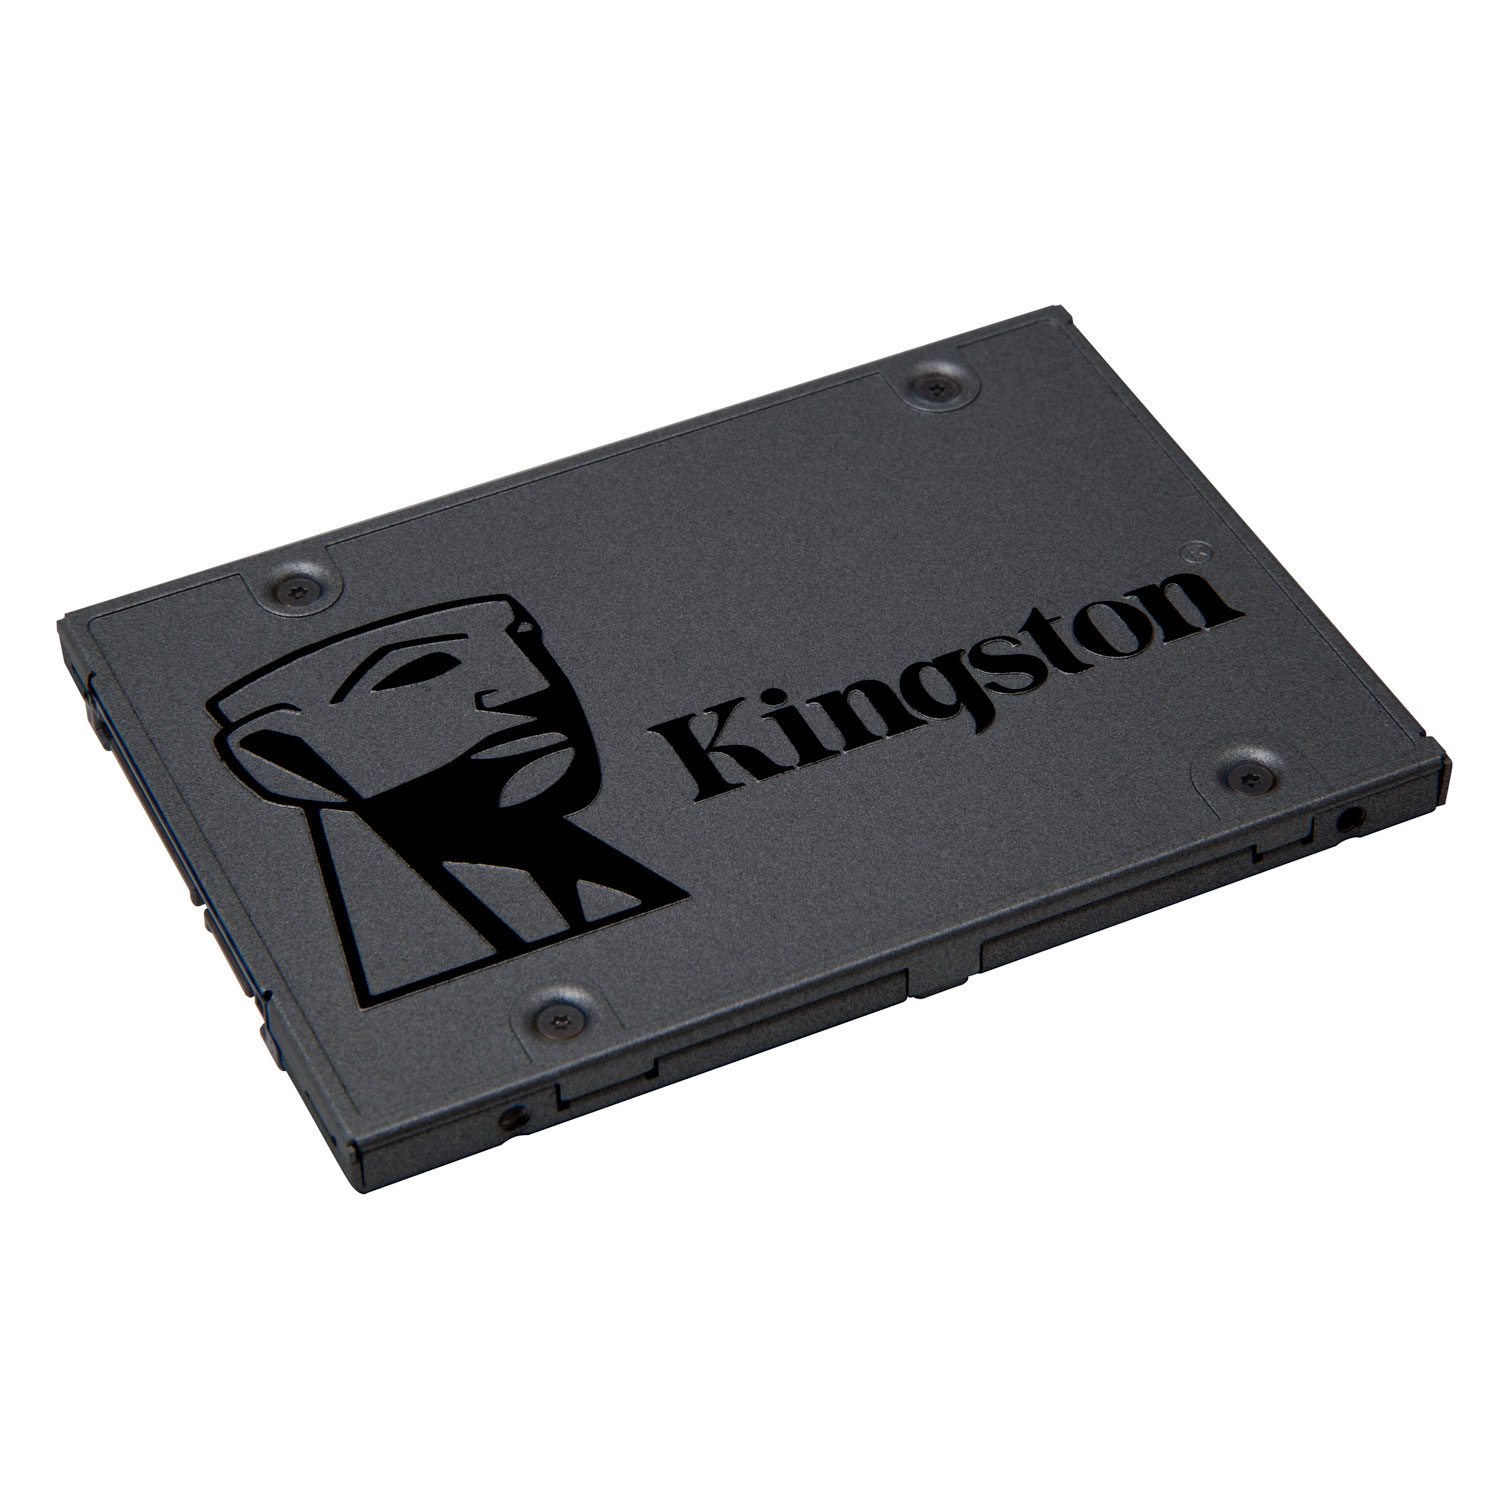 "Disque SSD Kingston SSD A400 120 Go SSD 120 Go 2.5"" 7mm Serial ATA 6Gb/s"